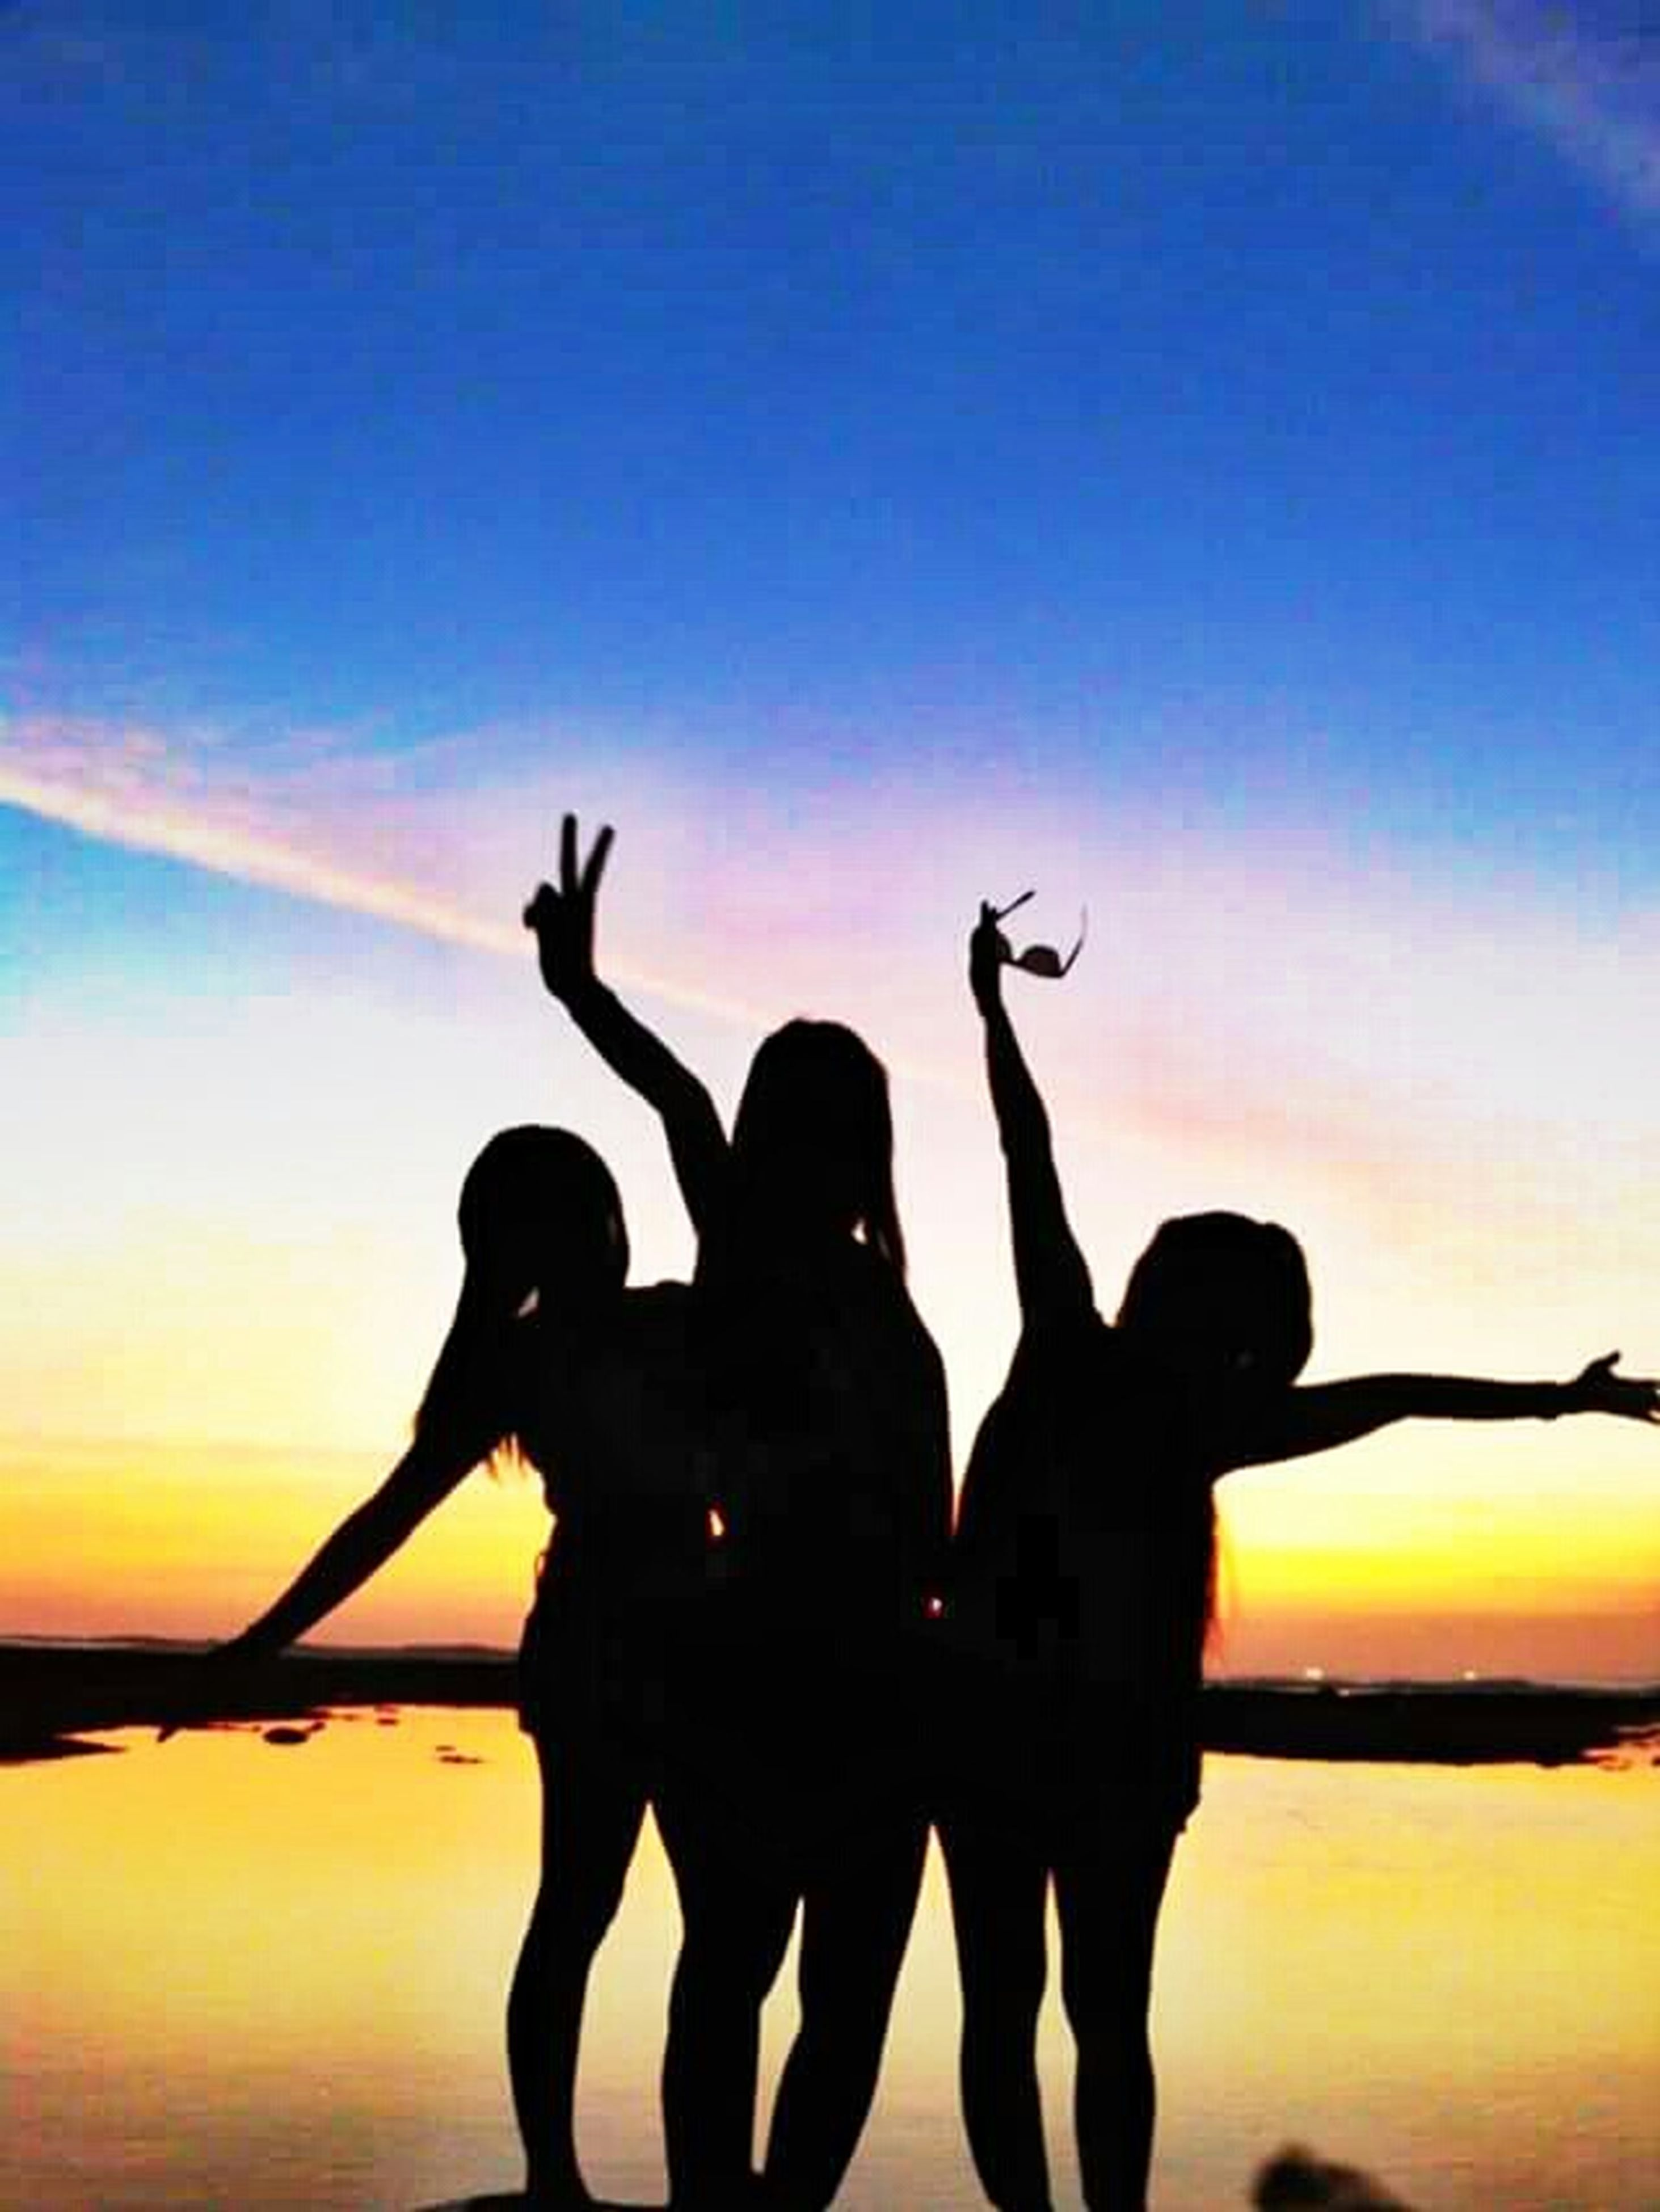 silhouette, sunset, water, leisure activity, togetherness, lifestyles, love, sea, bonding, men, sky, person, standing, horizon over water, friendship, vacations, nature, enjoyment